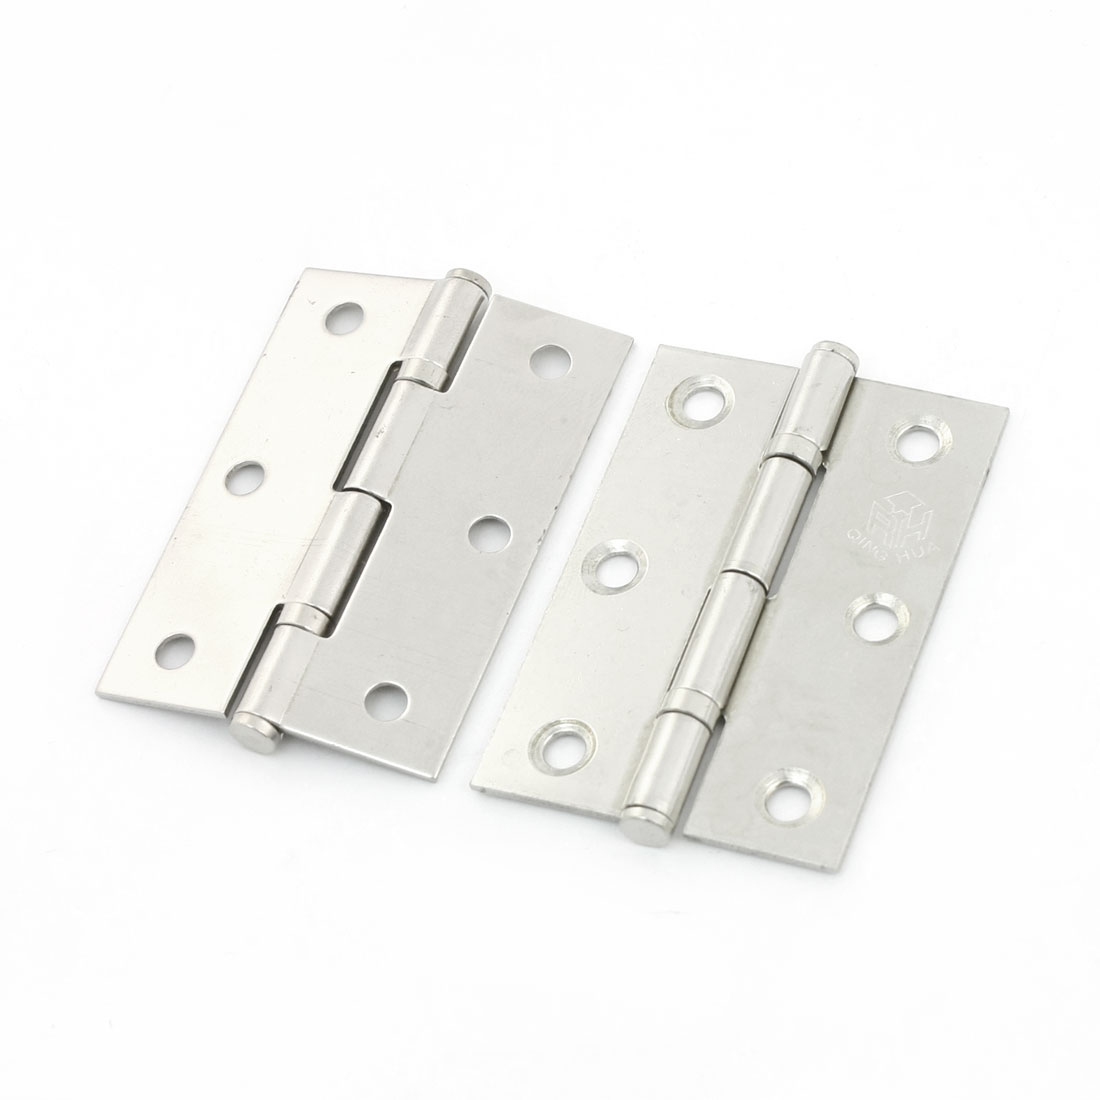 2pcs Hardware Silver Tone Butt Hinge 62mm for Home Cabinet Drawer Cupboard